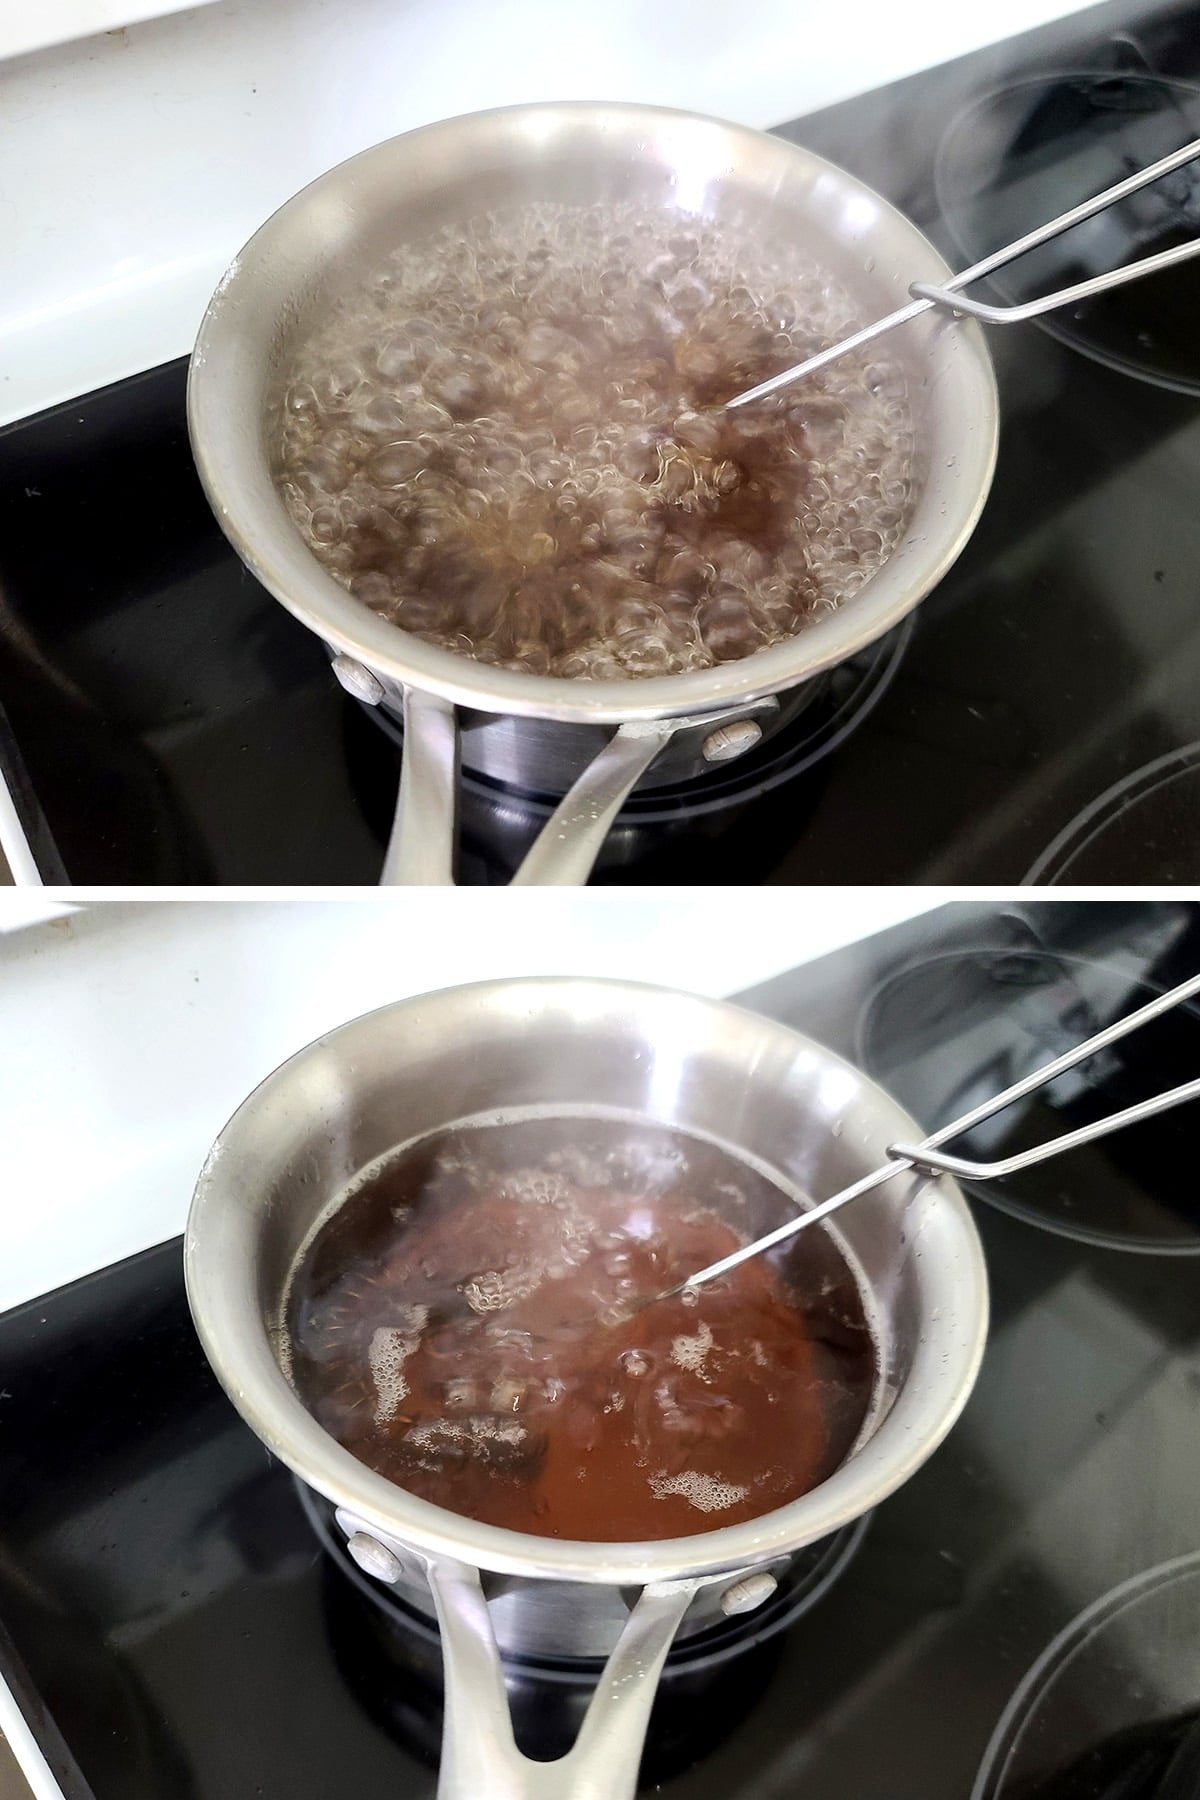 A two part image showing a small pot of clear brown liquid, at first boiling, then at a simmer.